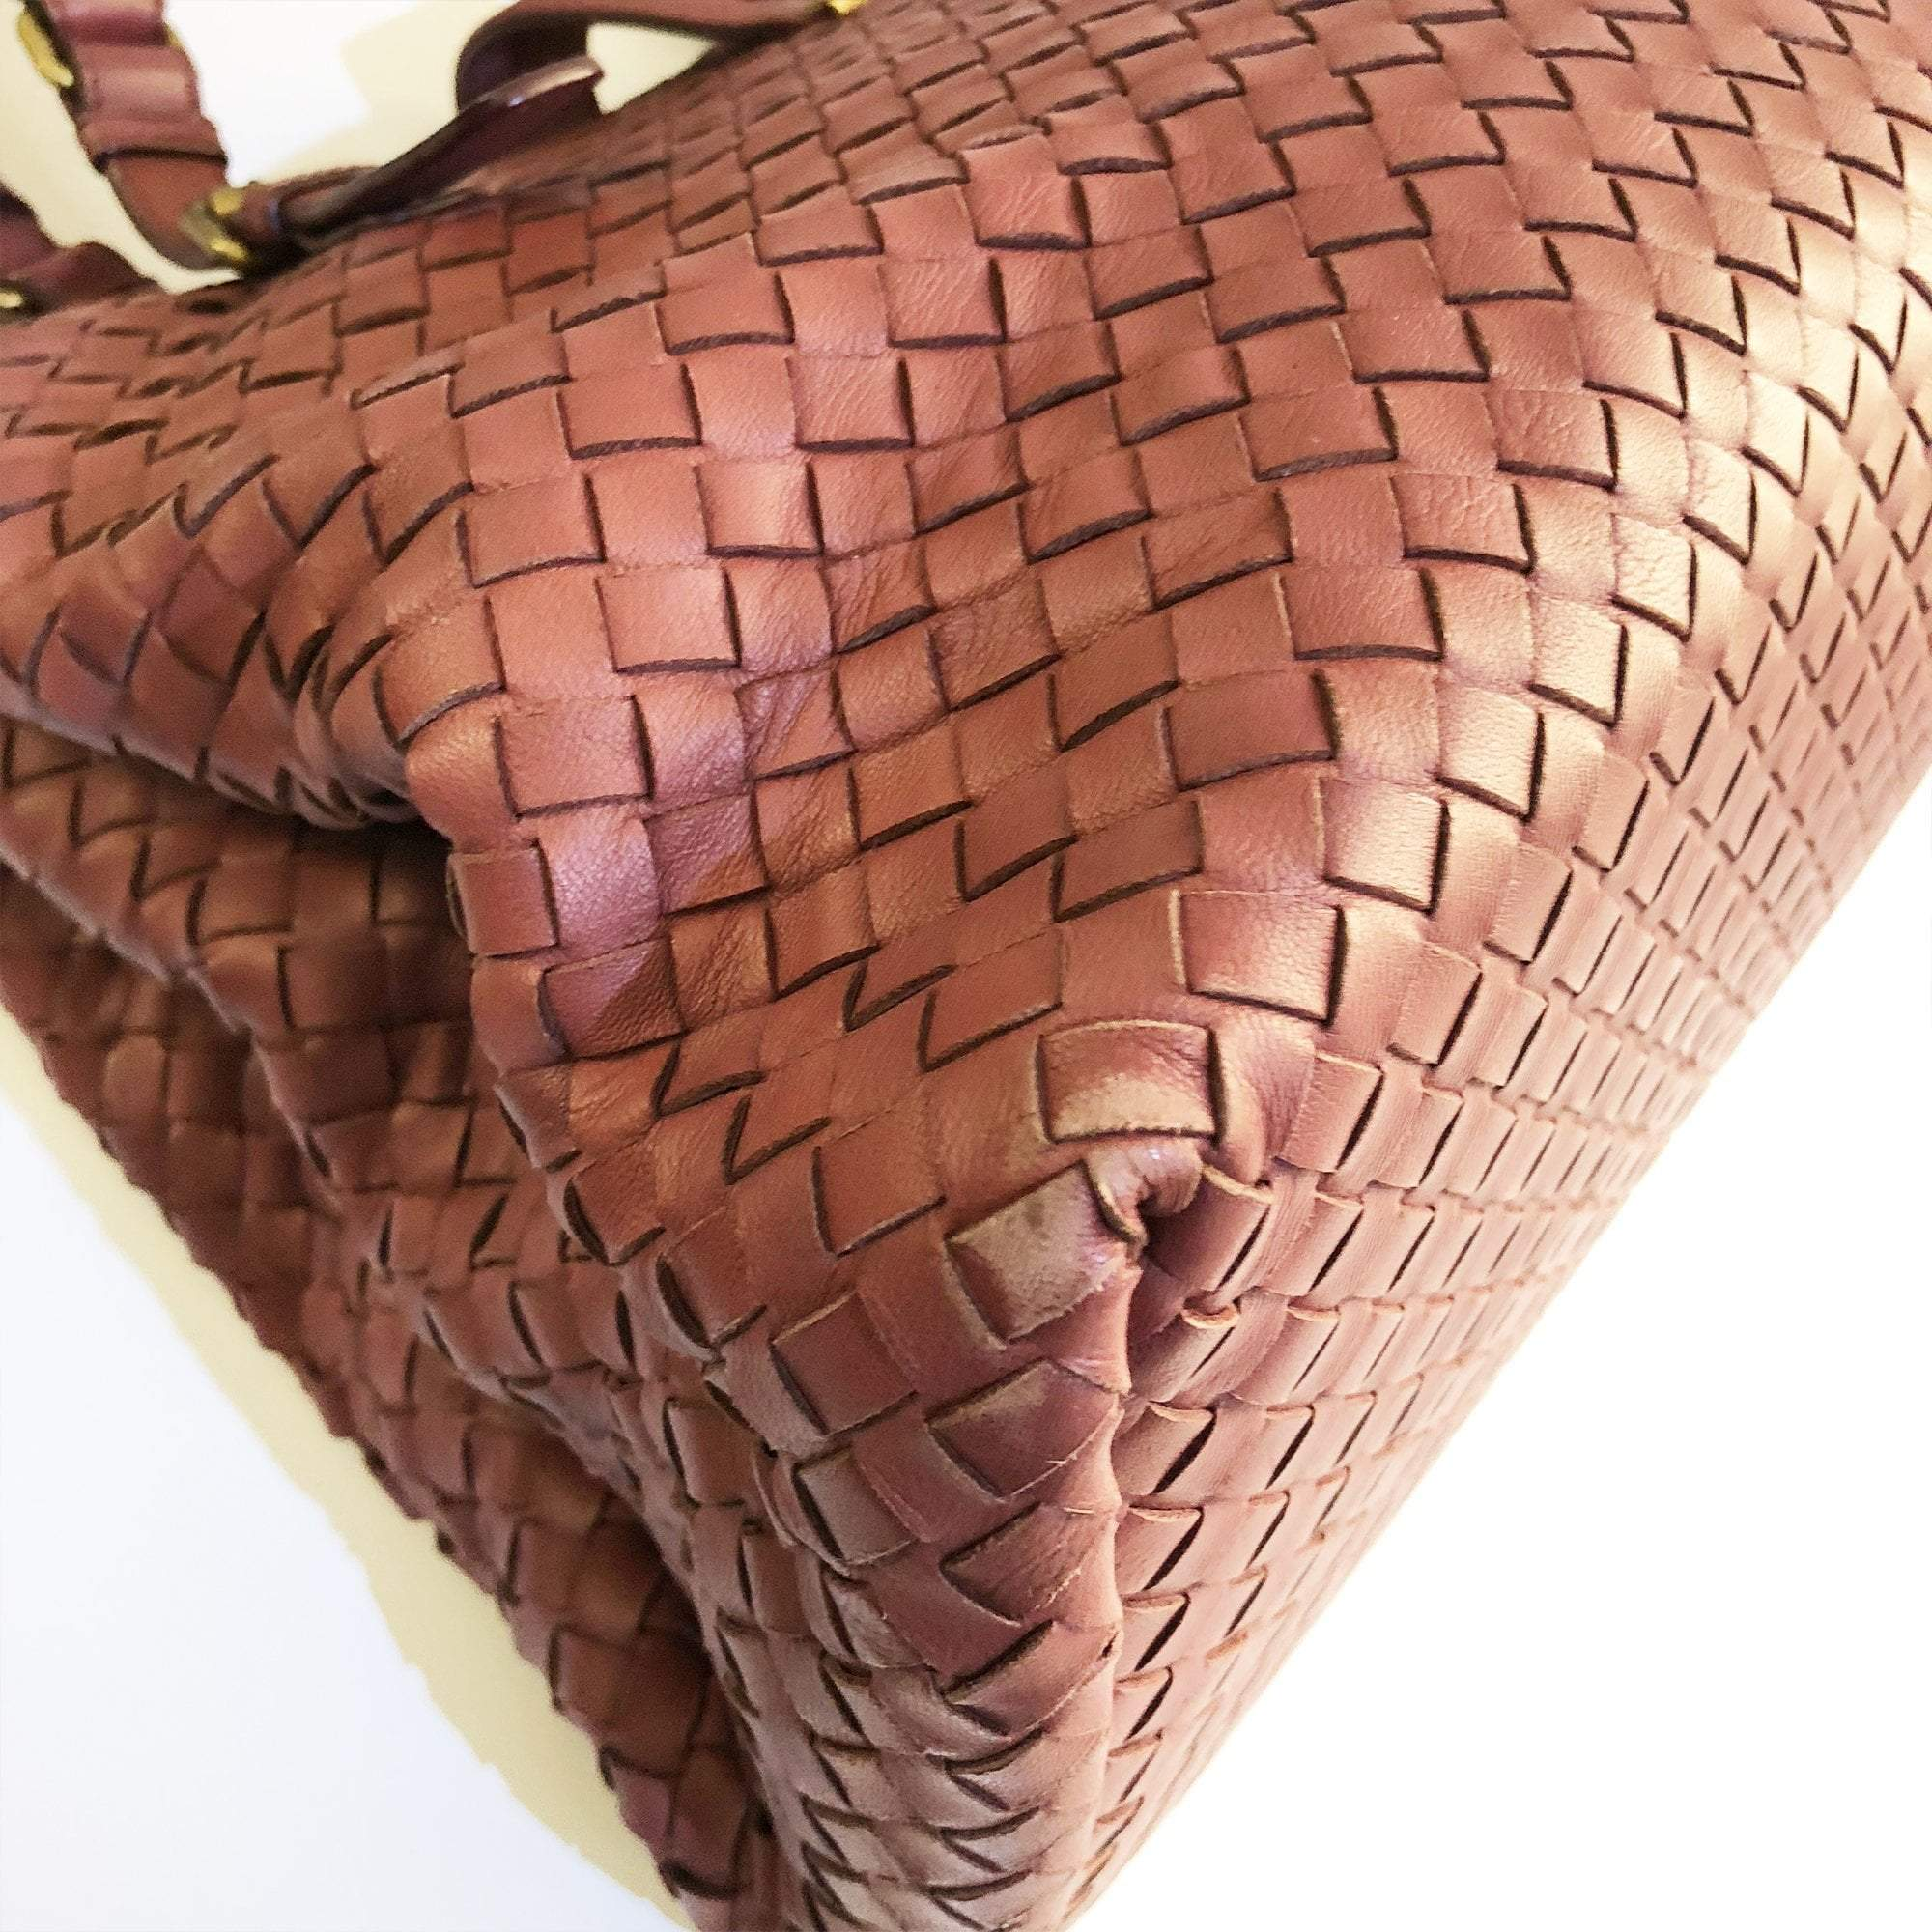 Bottega Veneta Maroon Roma Intrecciato Leather Tote Bag